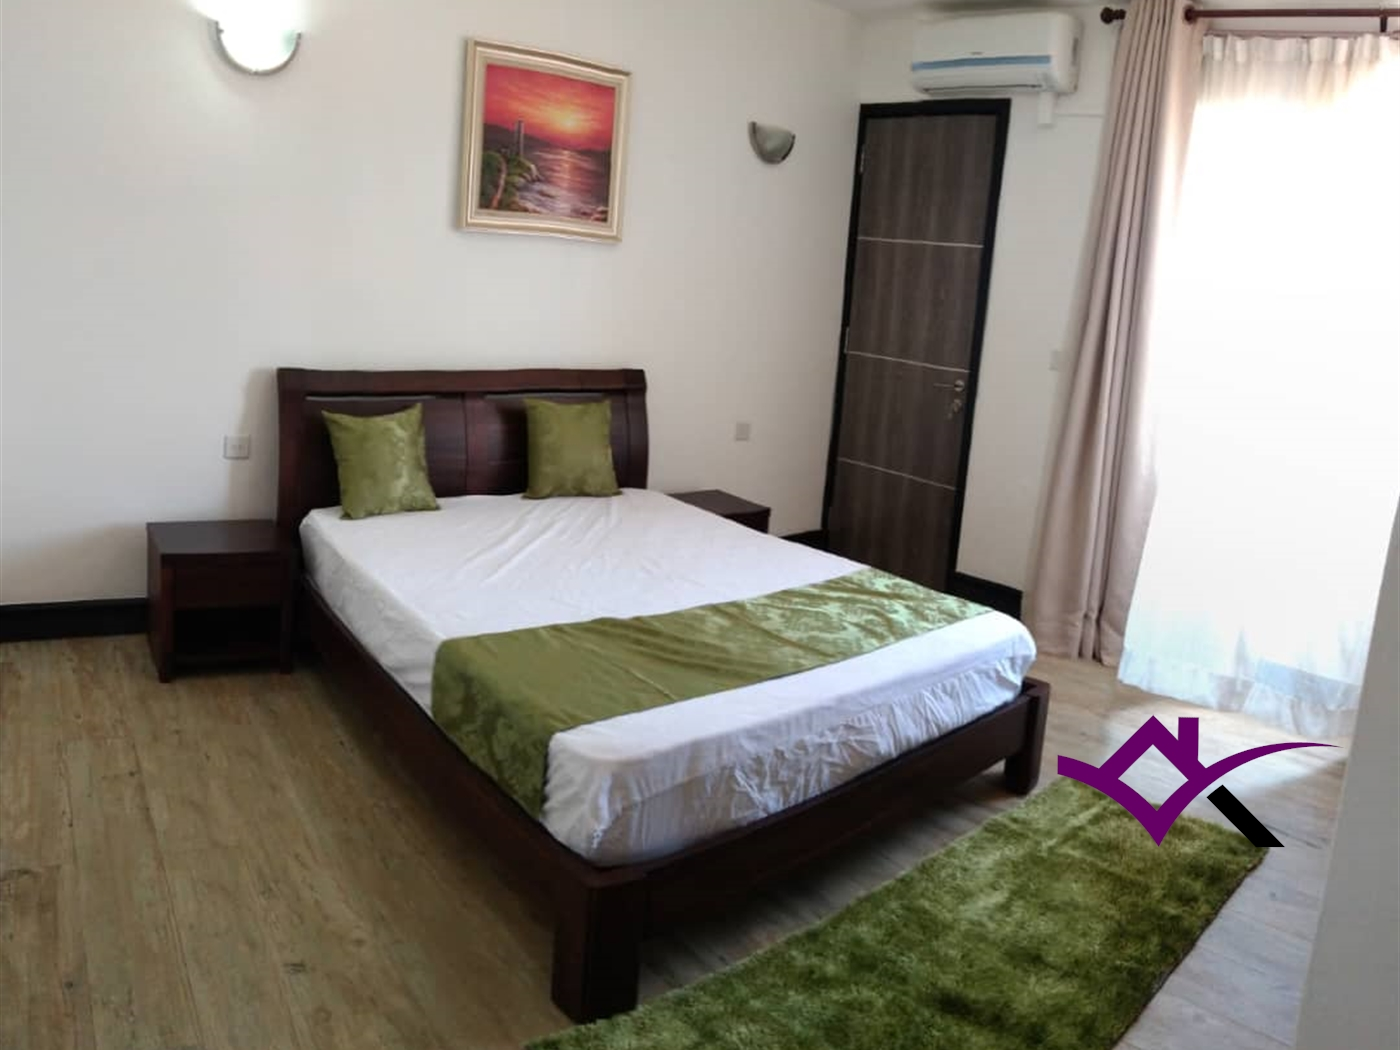 Penthouse for rent in Kololo Kampala